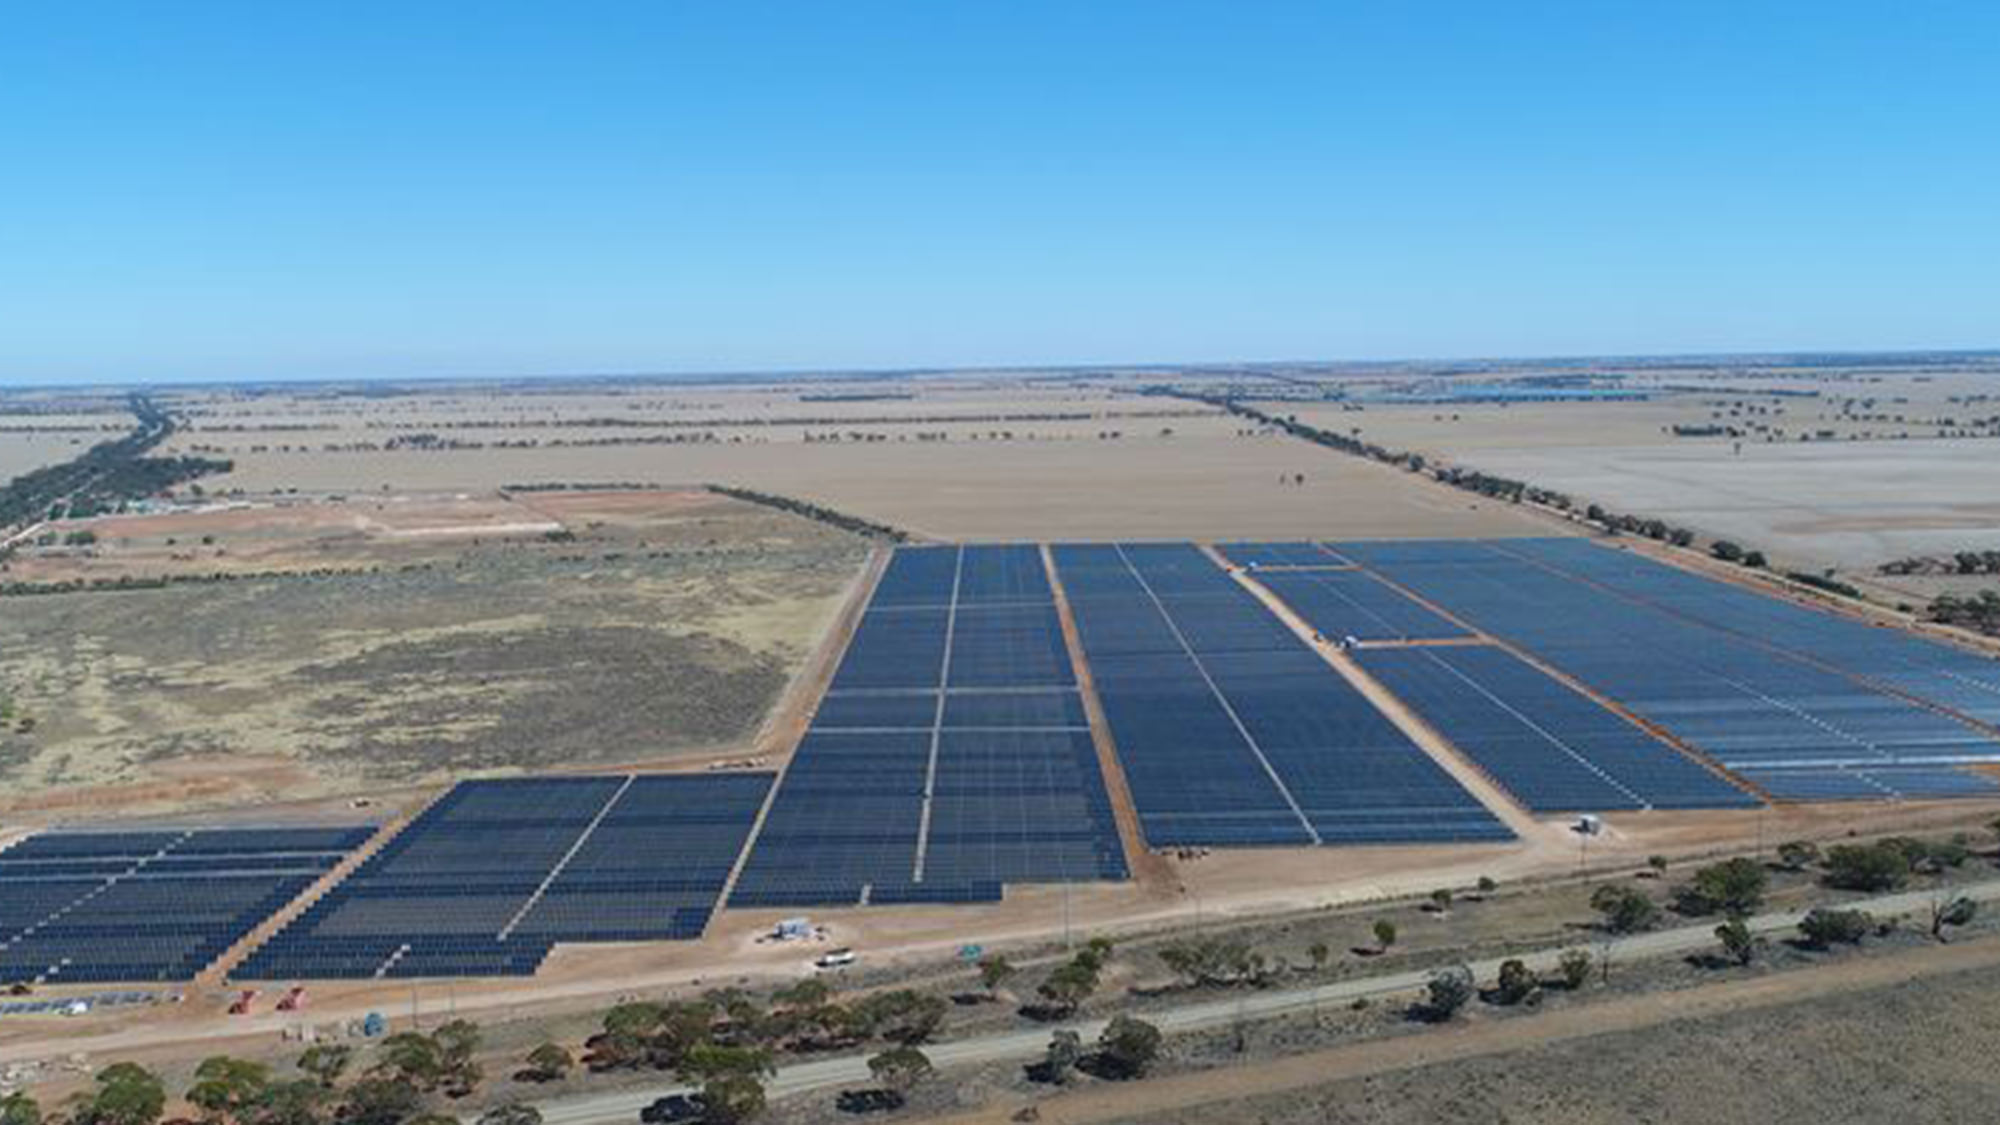 swan-hill-solar-project-image